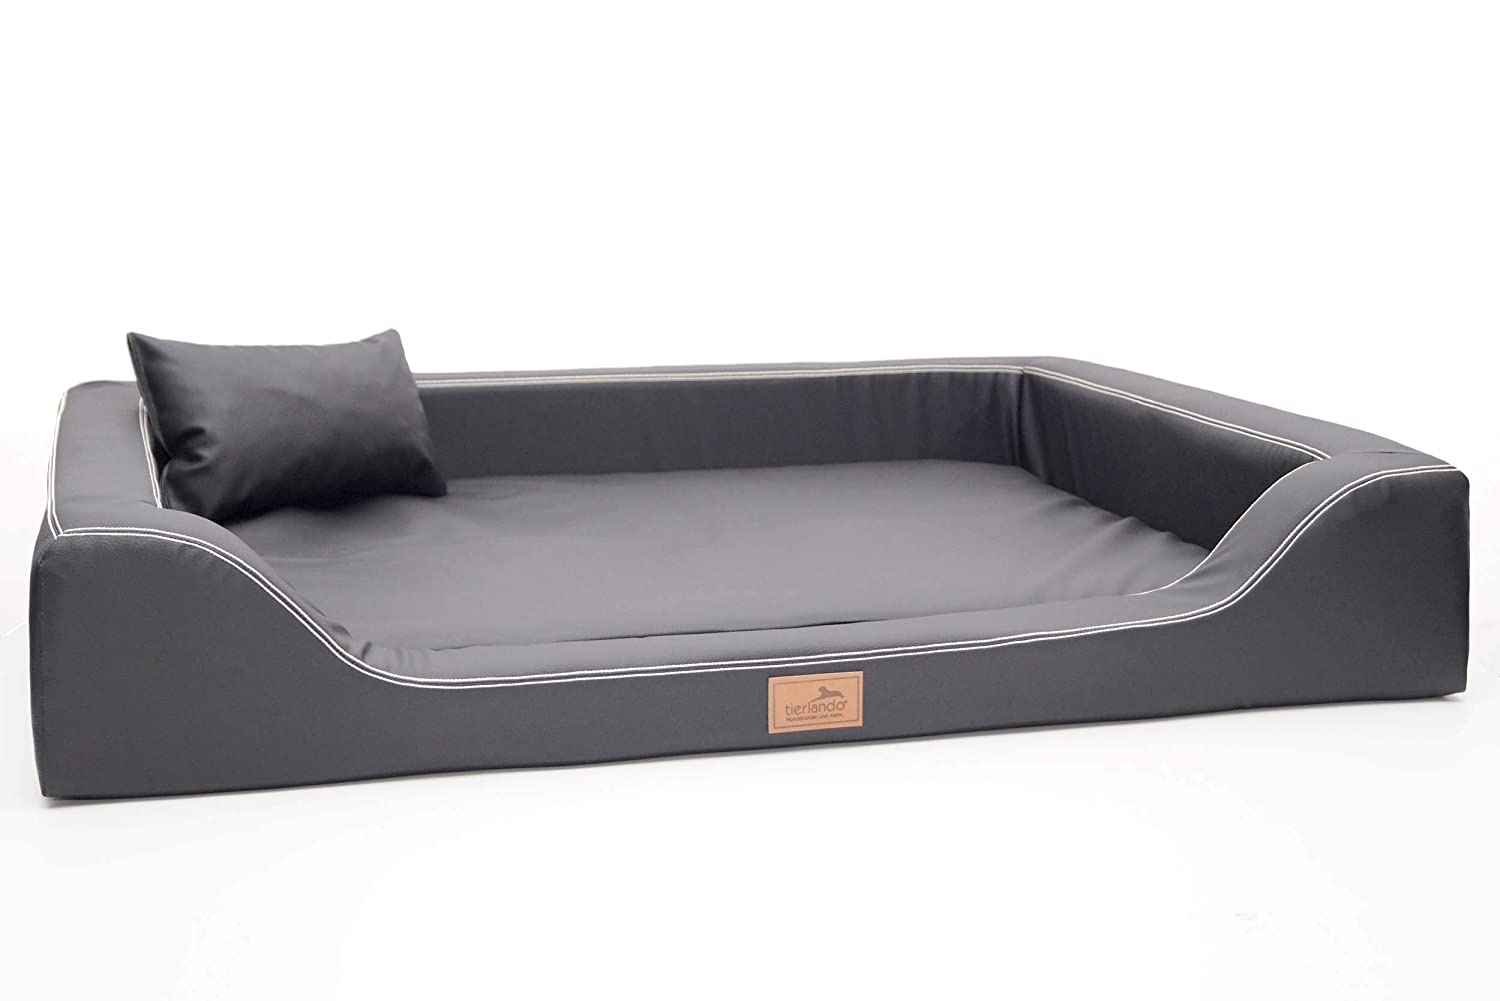 Tierlando Orthopedic Dog Bed Melody Latex Faux Lether Anti-hair 02 Graphite, MDY6   150x100 cm (Innen 130x80 cm)